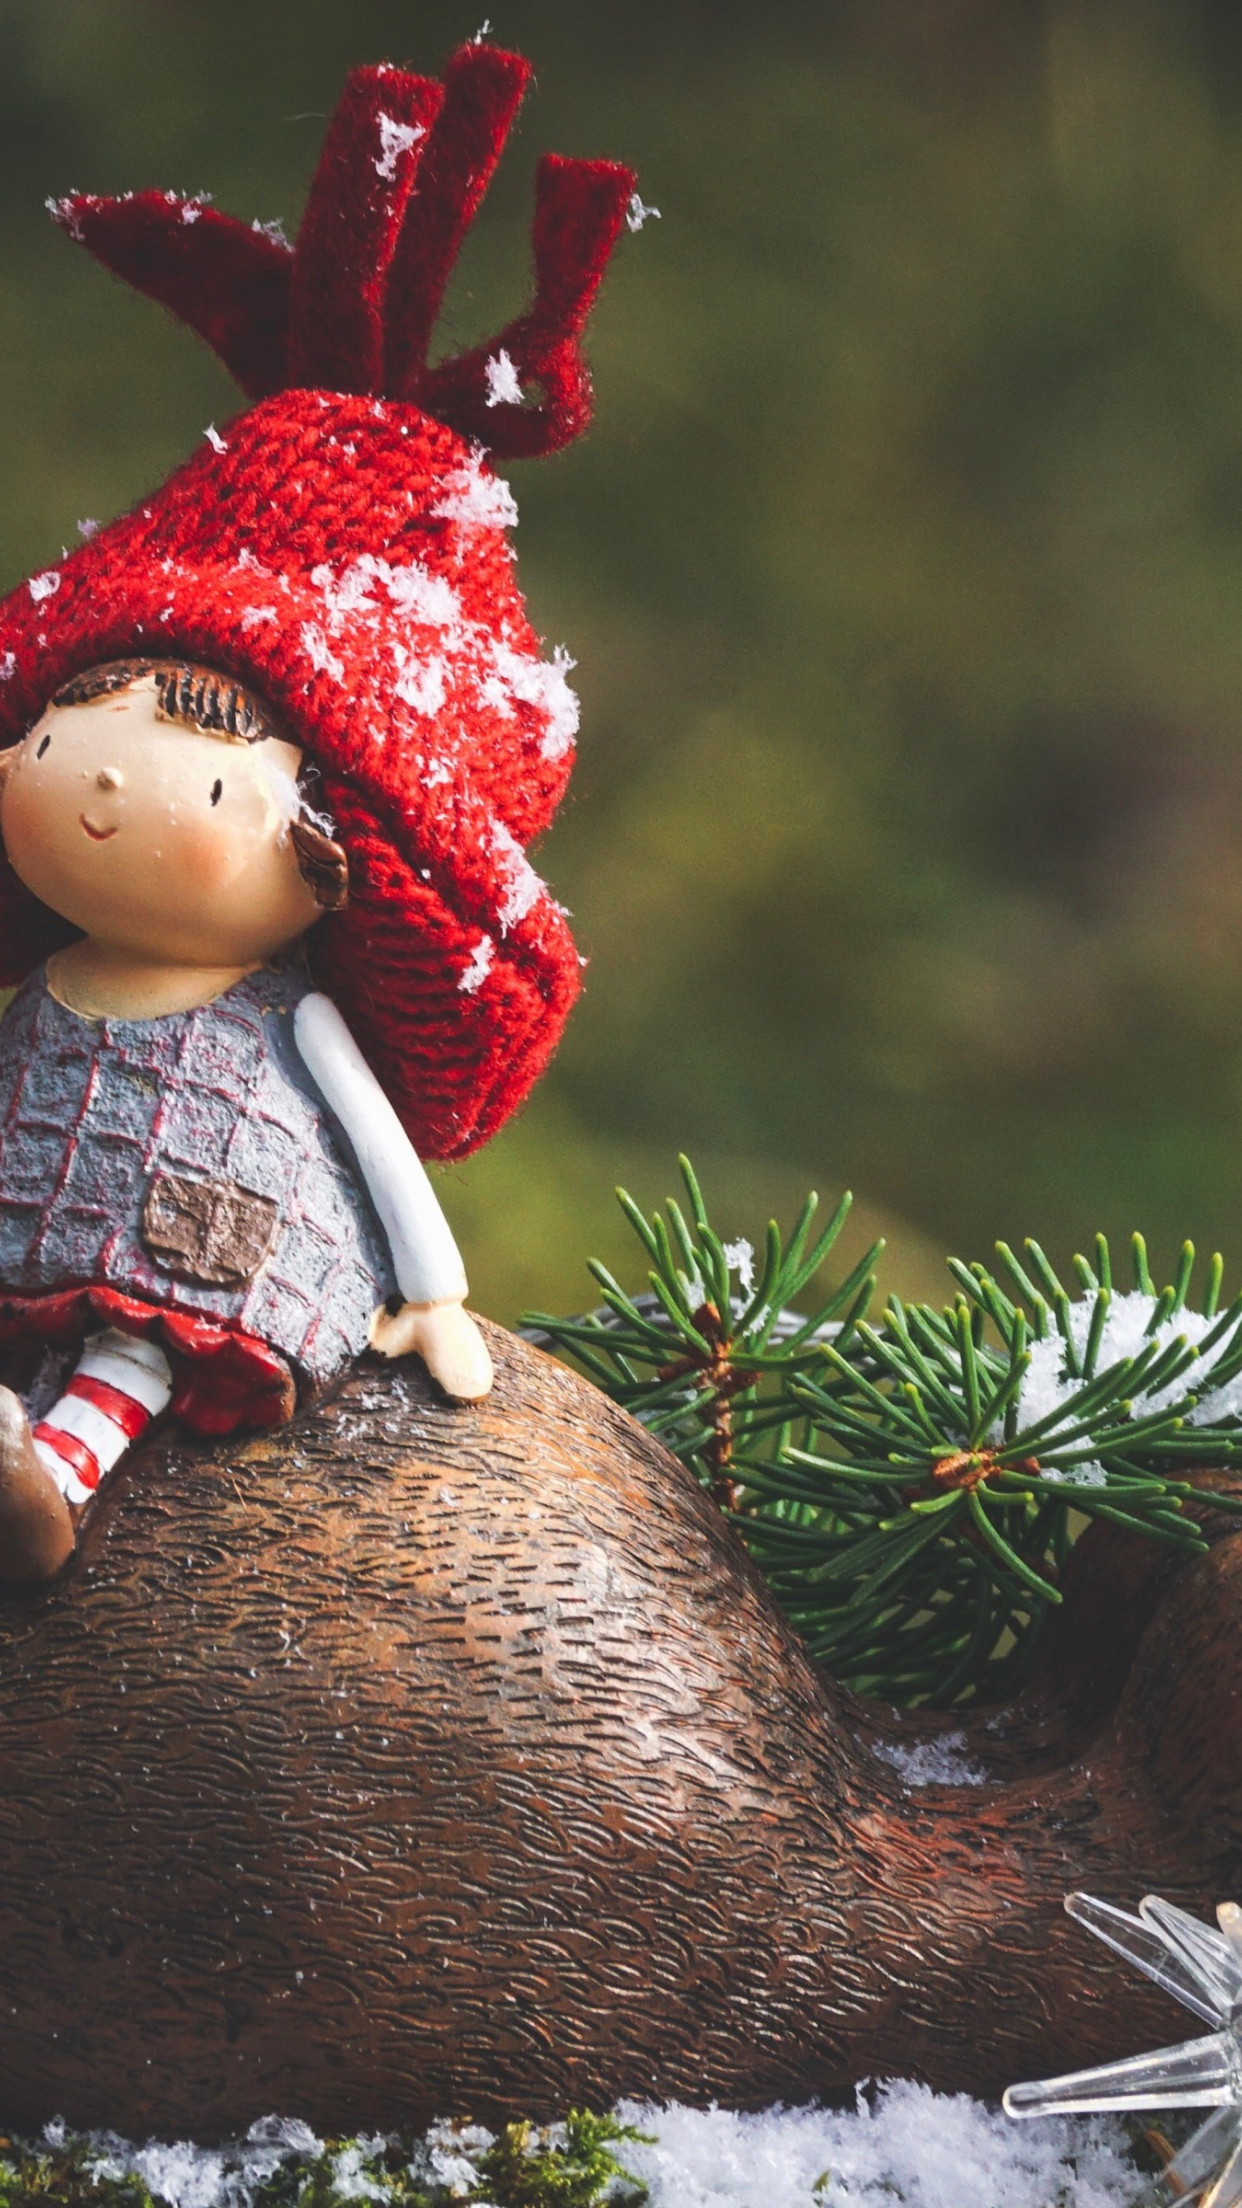 Cute Christmas decoration wallpaper 1242x2208